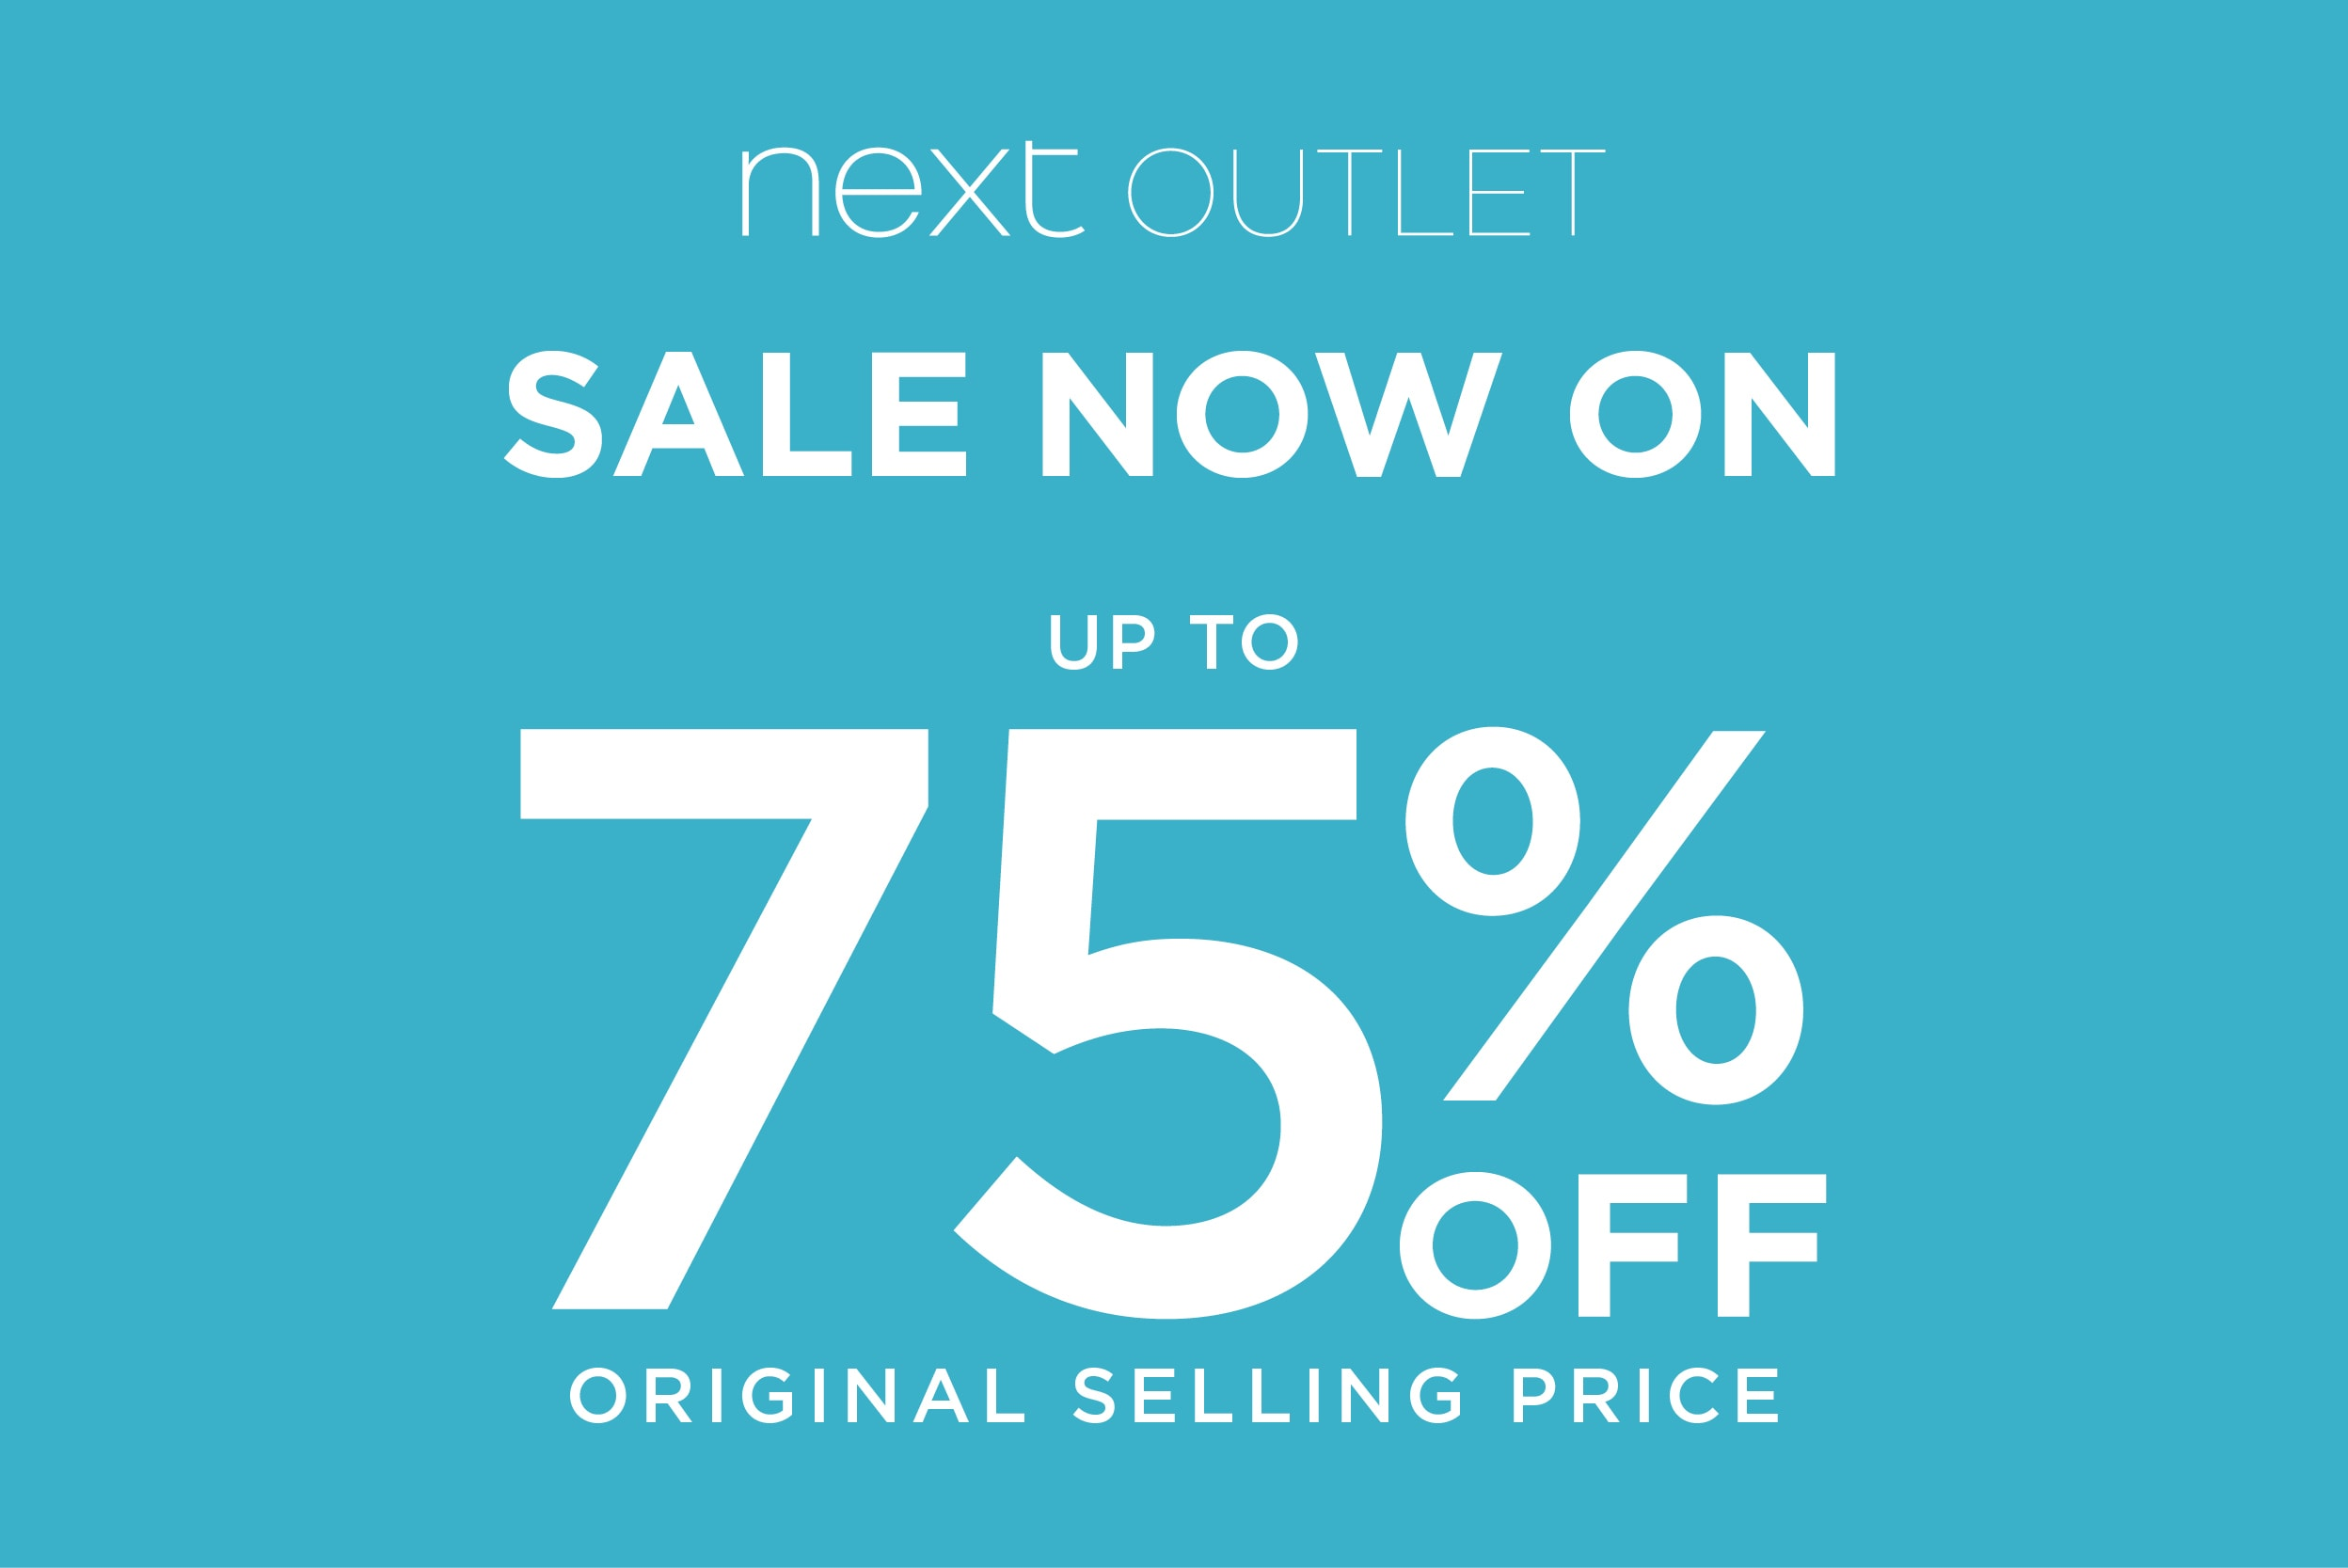 Next Outlet Sale Now On – Up to 75% Off